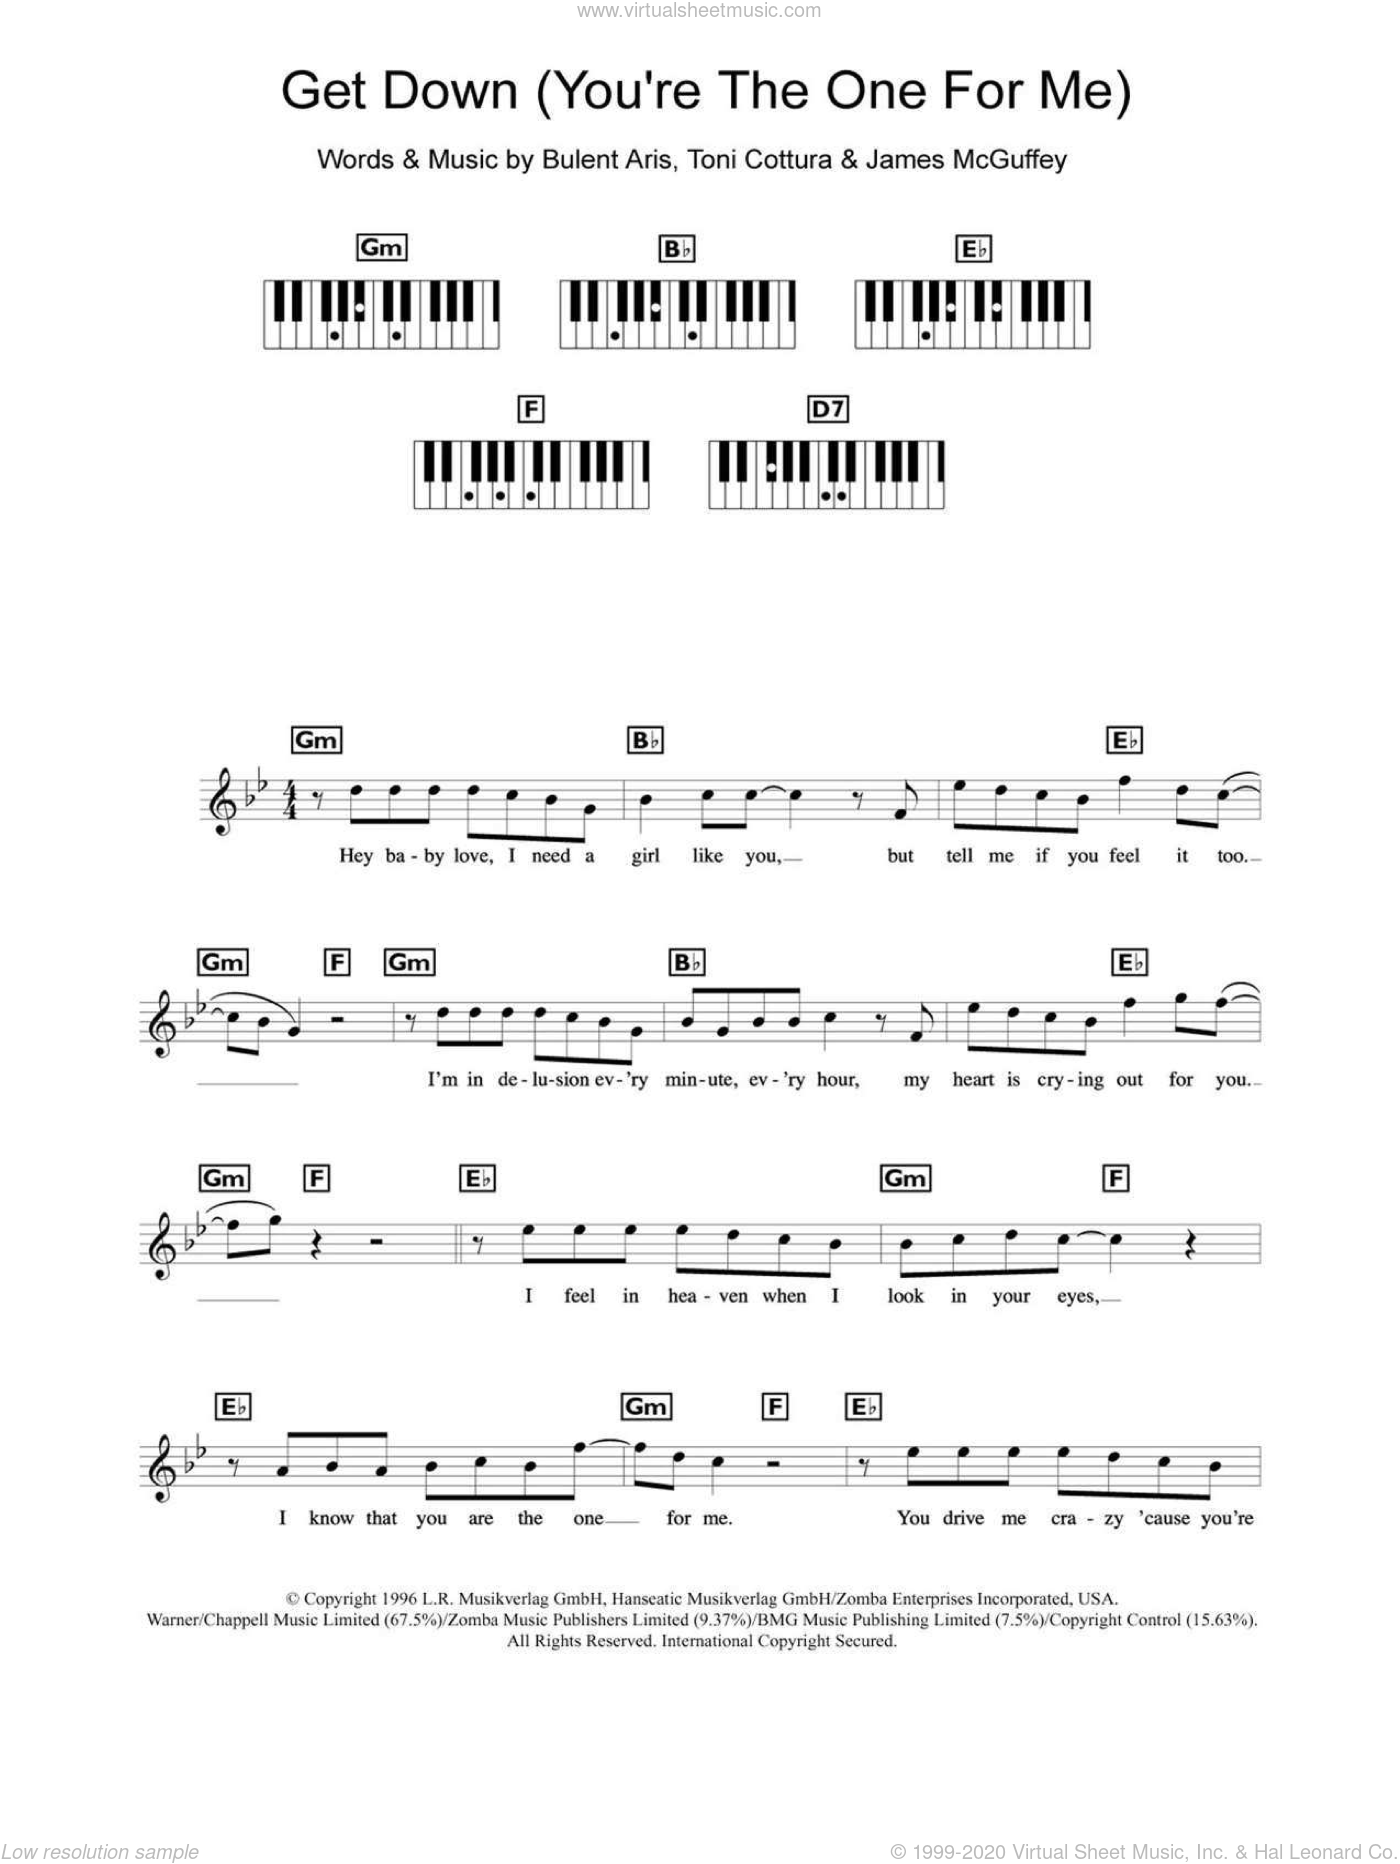 Get Down (You're The One For Me) sheet music for piano solo (chords, lyrics, melody) by Backstreet Boys, Bulent Aris, James McGuffey and Toni Cottura, intermediate piano (chords, lyrics, melody)